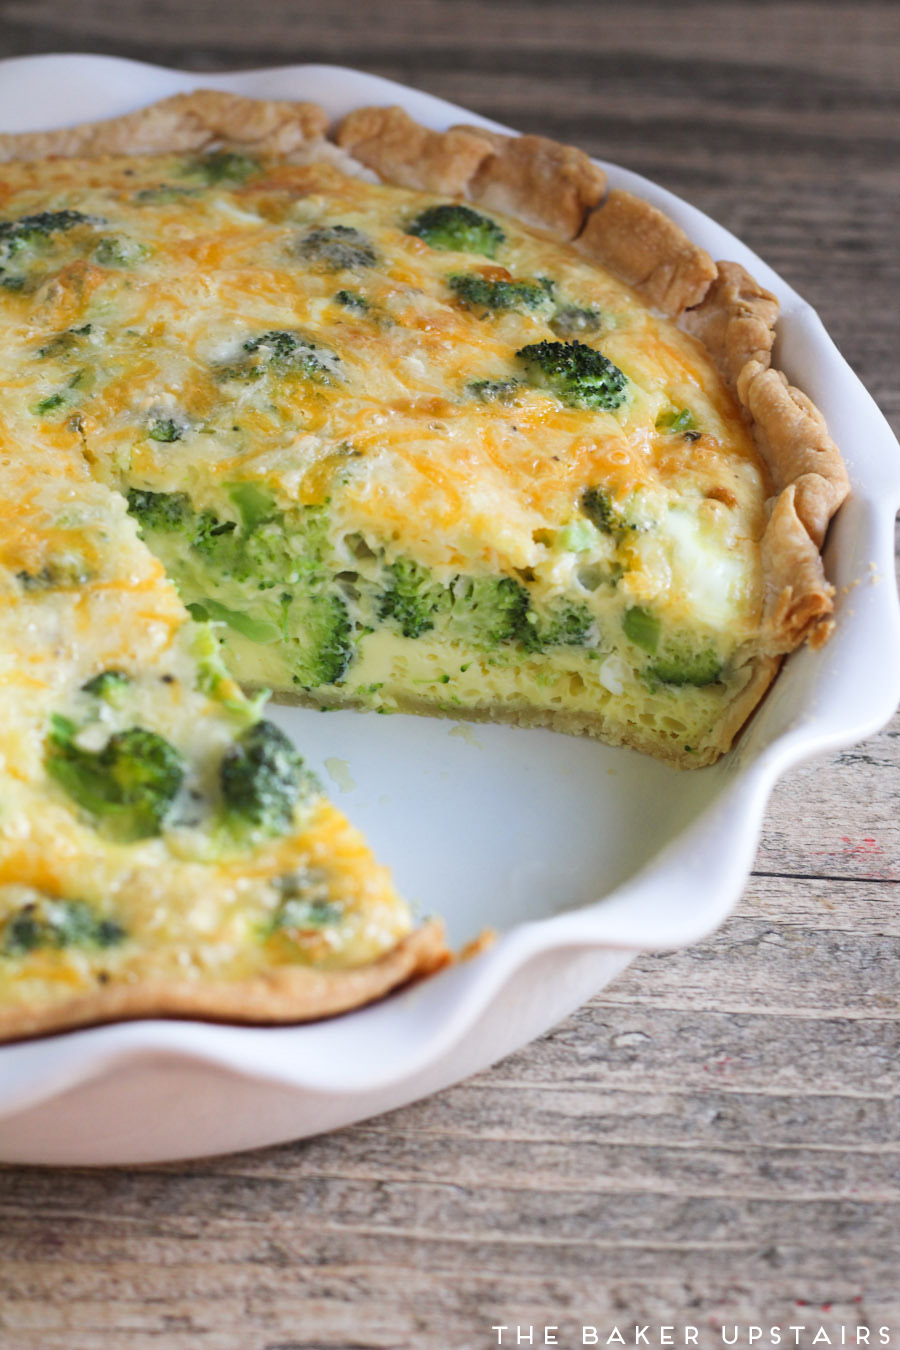 the baker upstairs: broccoli cheese quiche